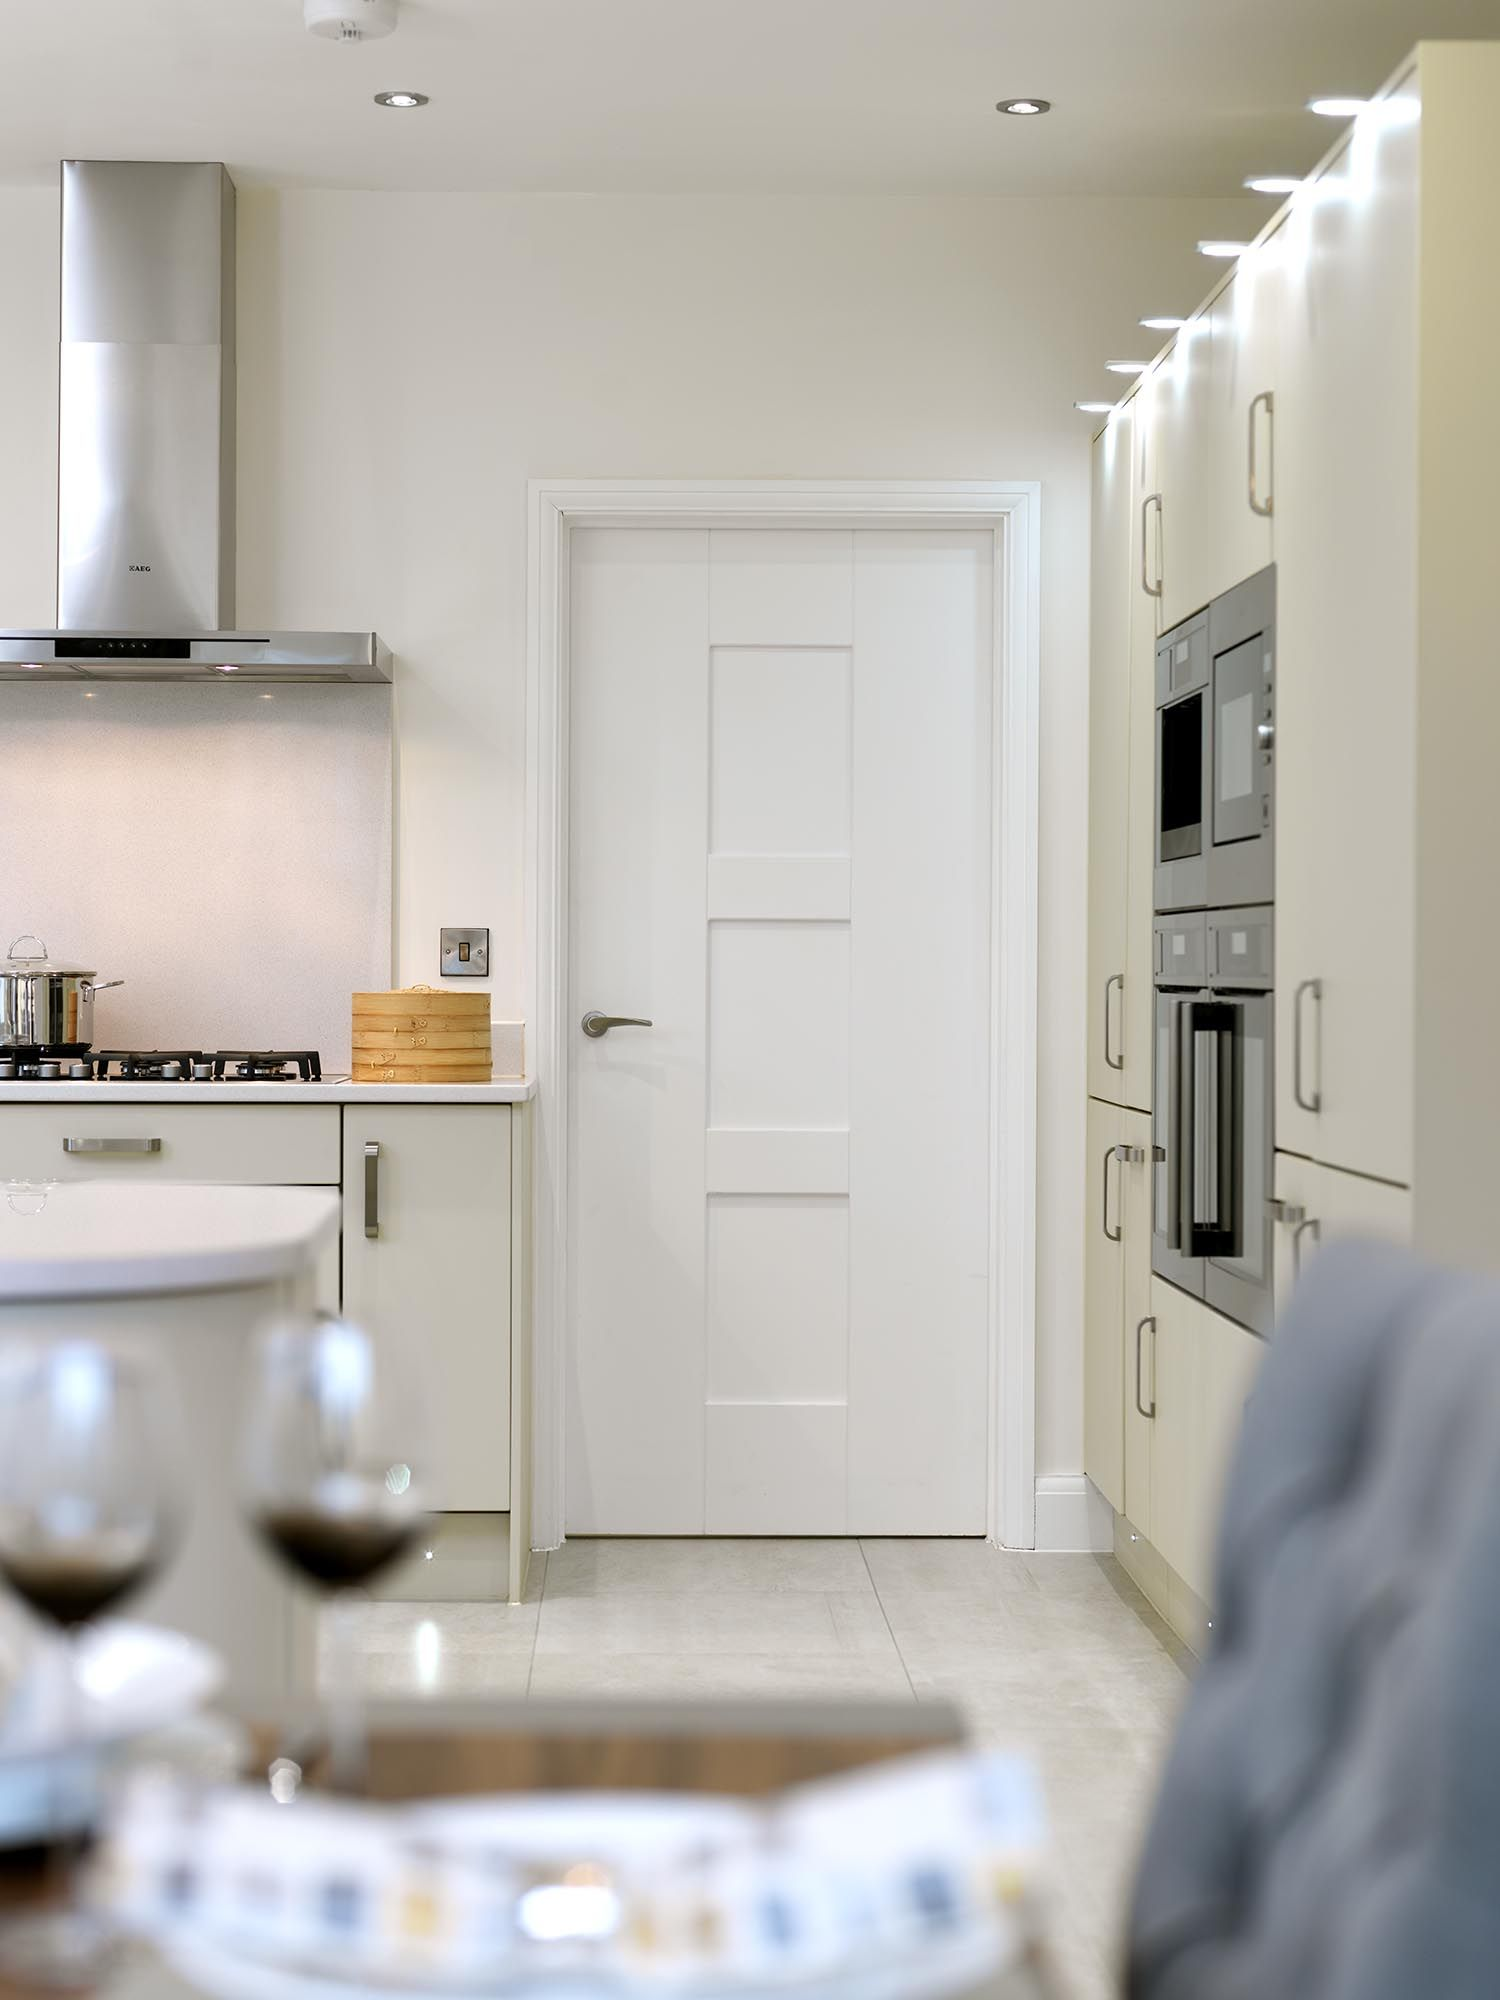 Contemporary #Whitedoor Looking Rather Stylish In This Modern Kitchen Jb